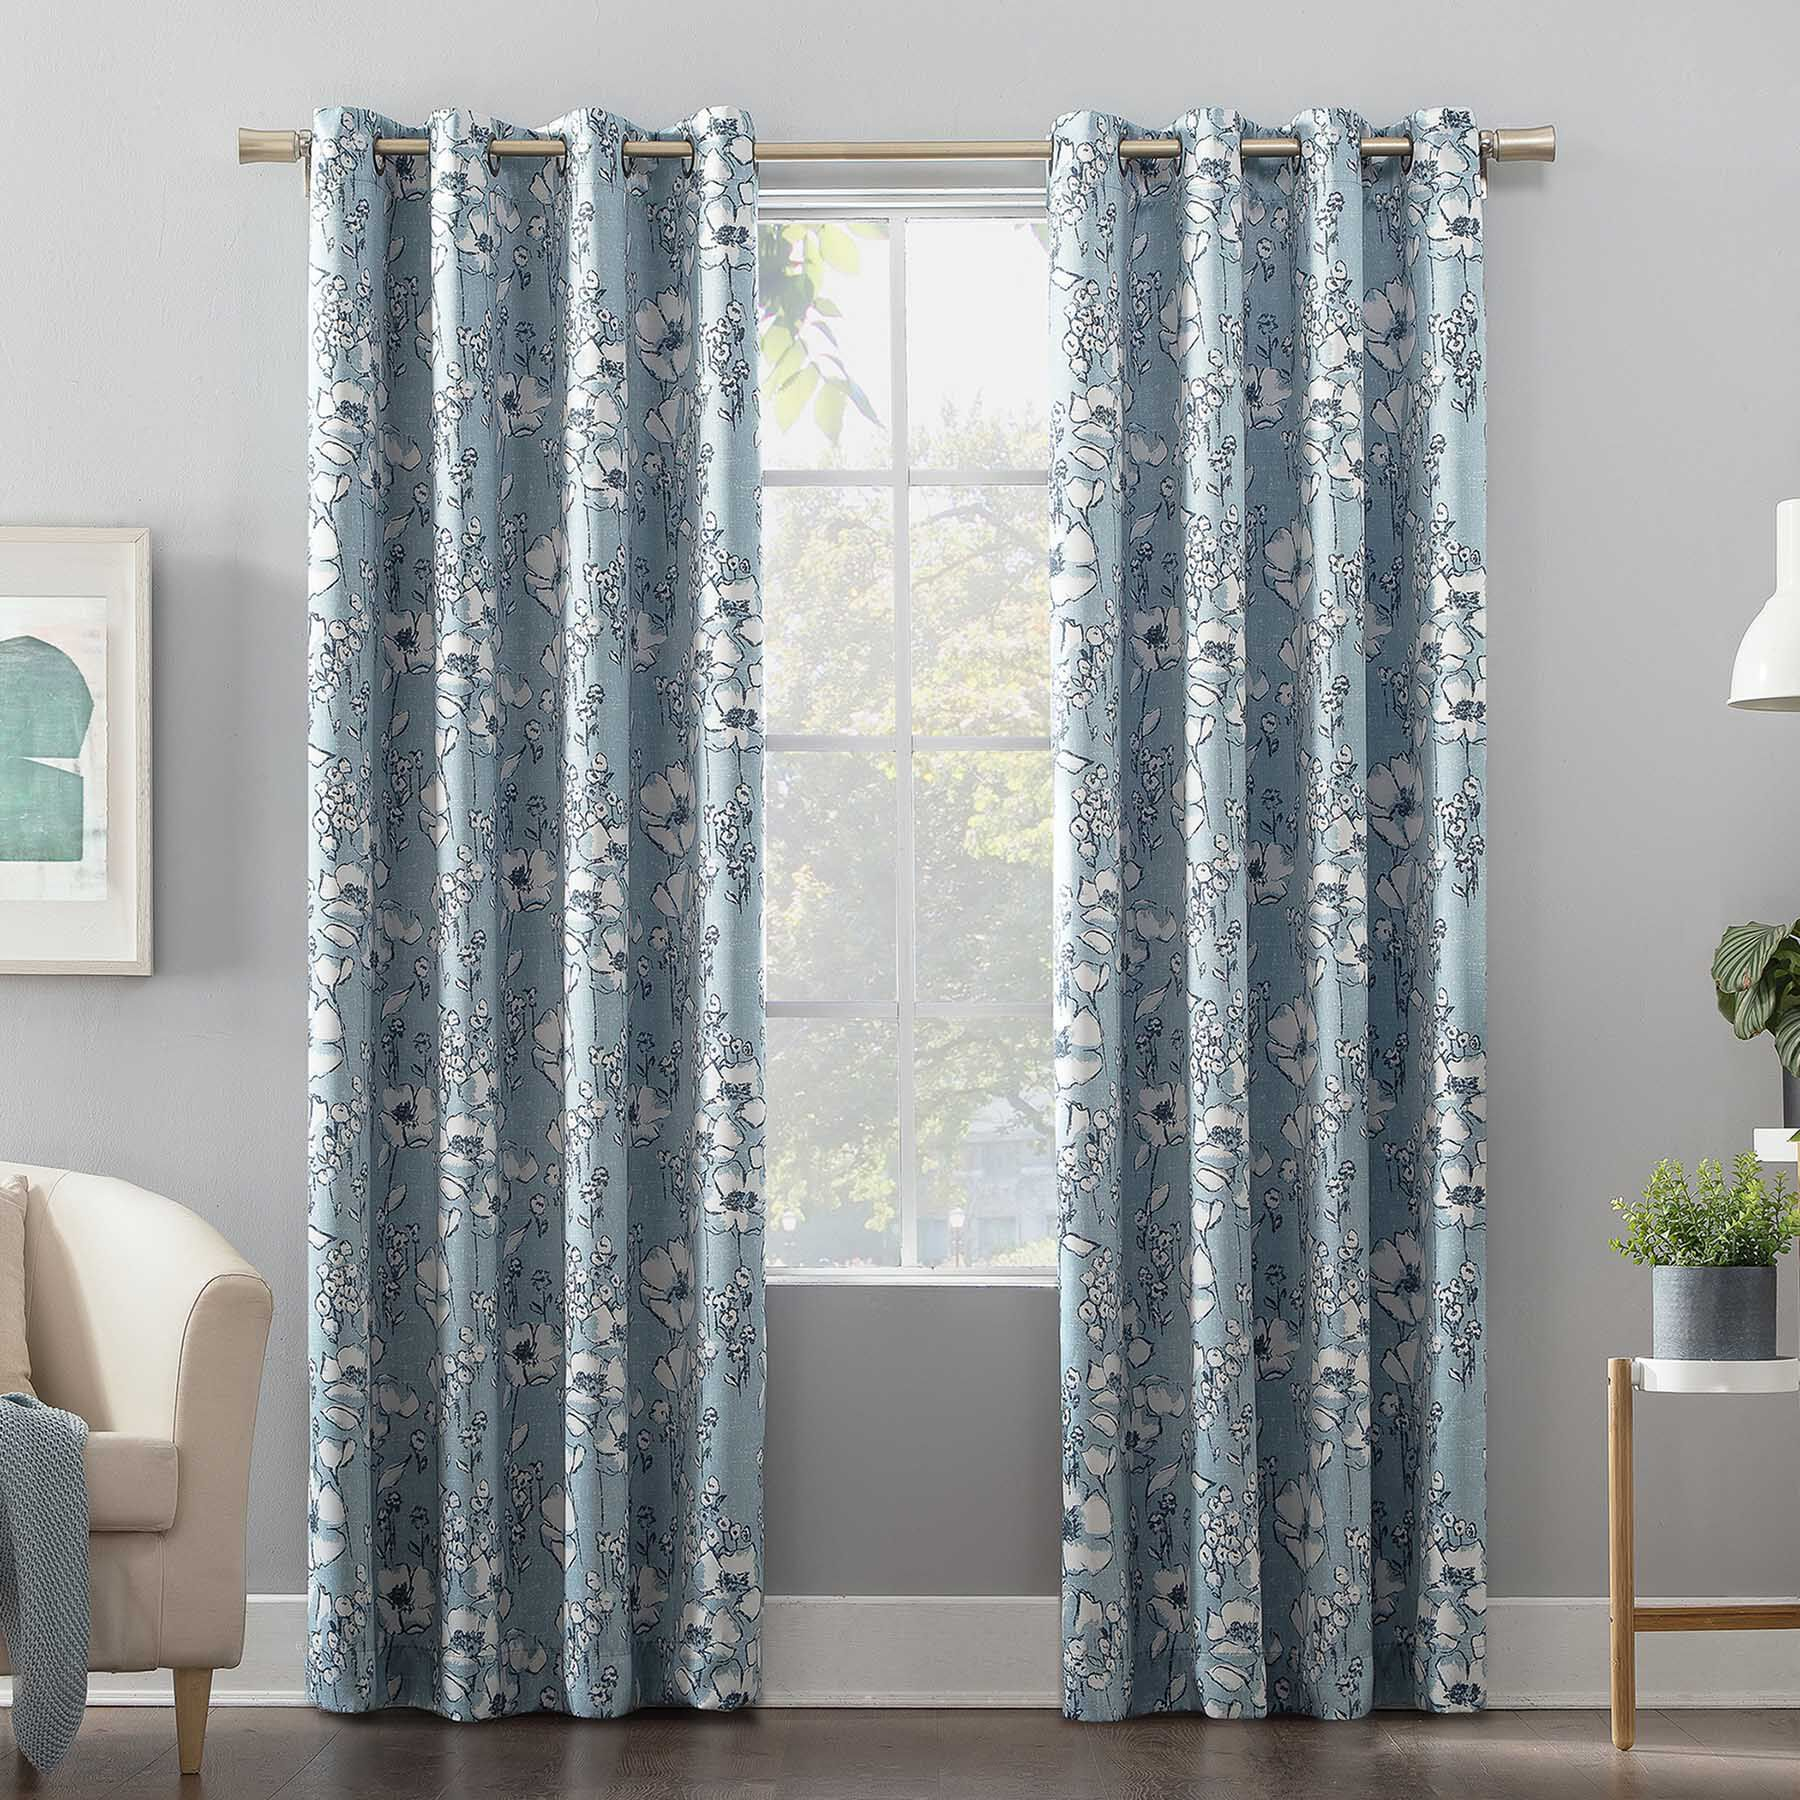 curtains for my living room home paint ideas and drapes drape collection at stores product 124263061